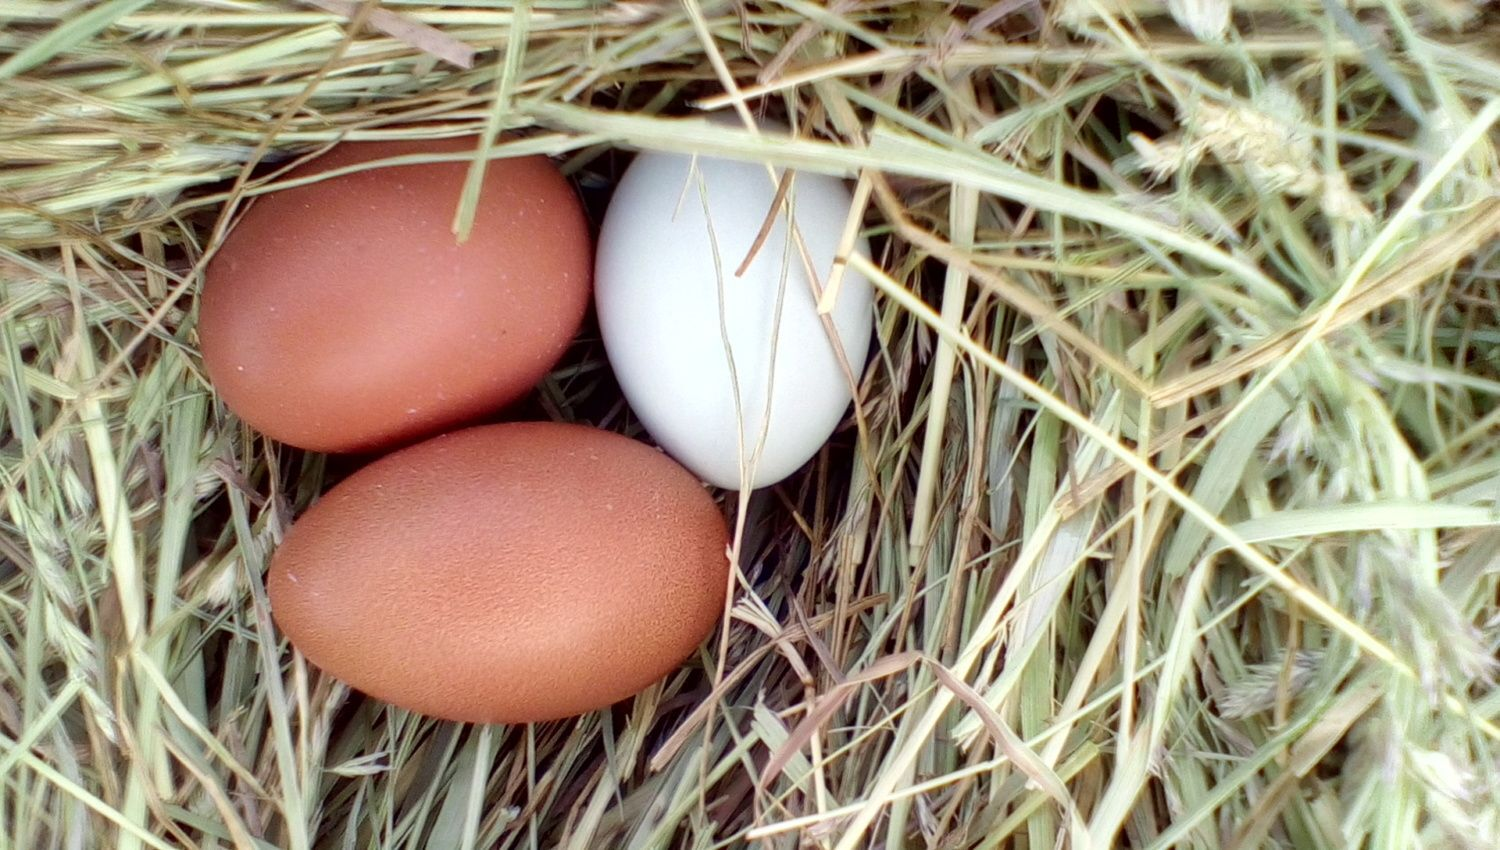 donrae's photos in Pictures of your marans eggs!!!